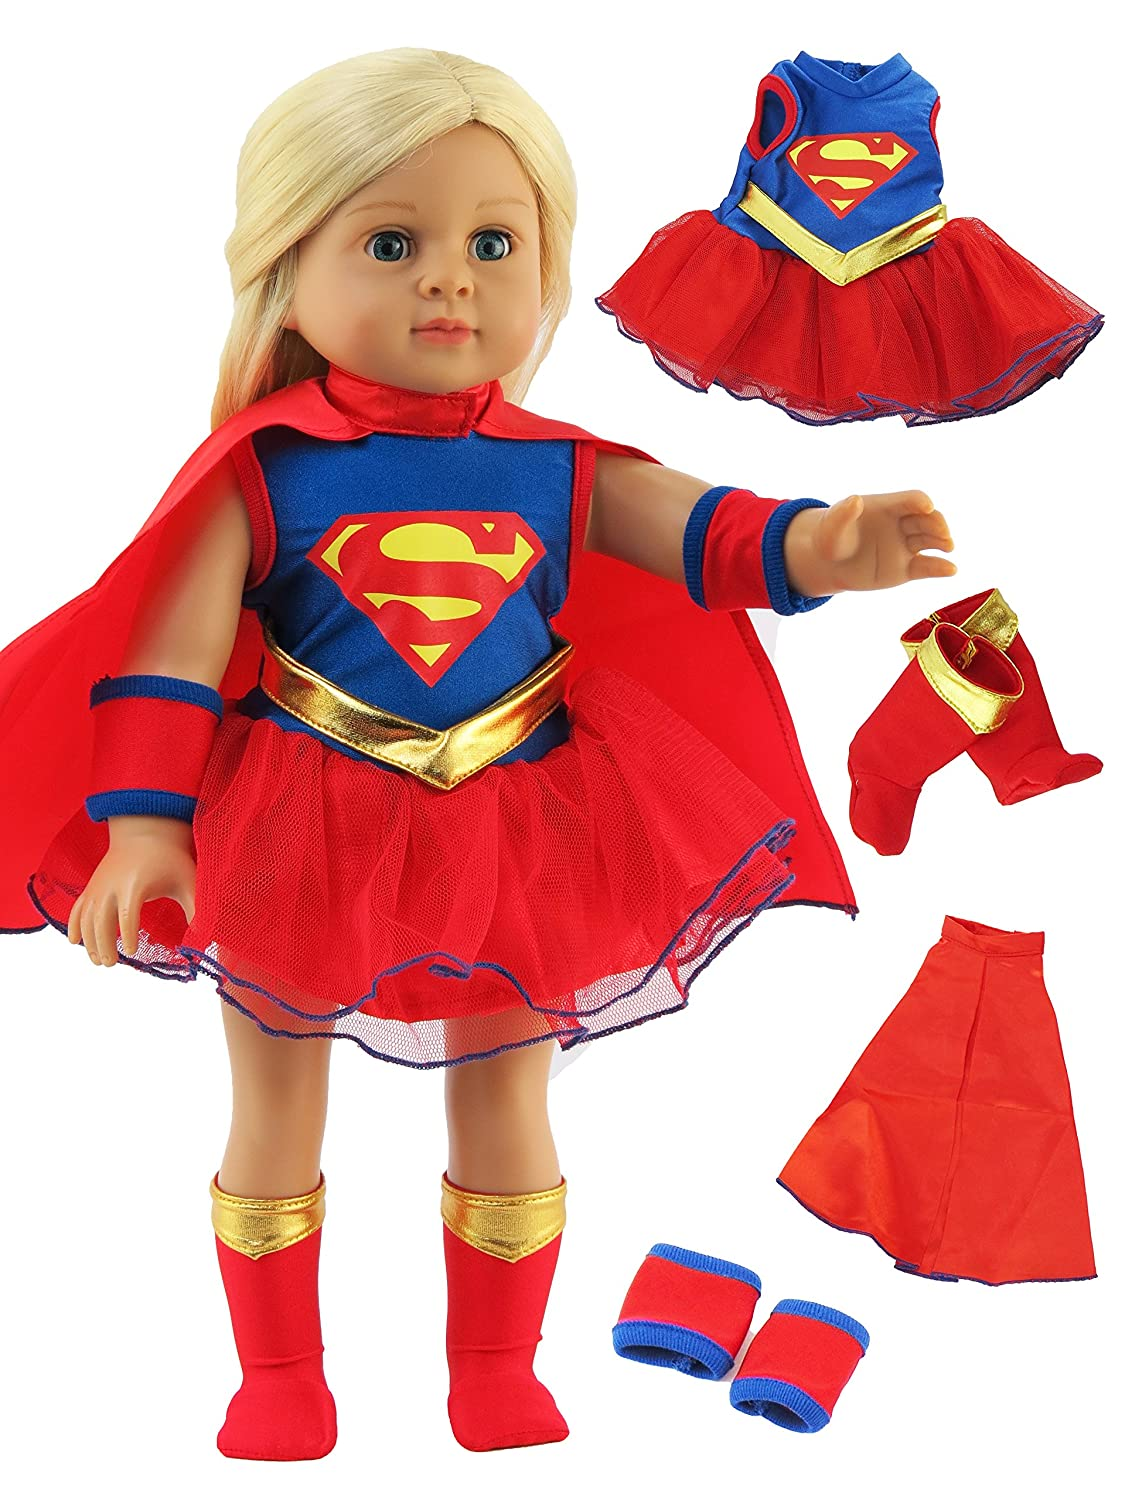 Super Girl Costume - 18 Inch Doll Clothes - Fits 18 American Girl Dolls, Madame Alexander, Our Generation, etc. Great Quality - Beautiful FabricsDOLL NOT INCLUDED American Fashion World